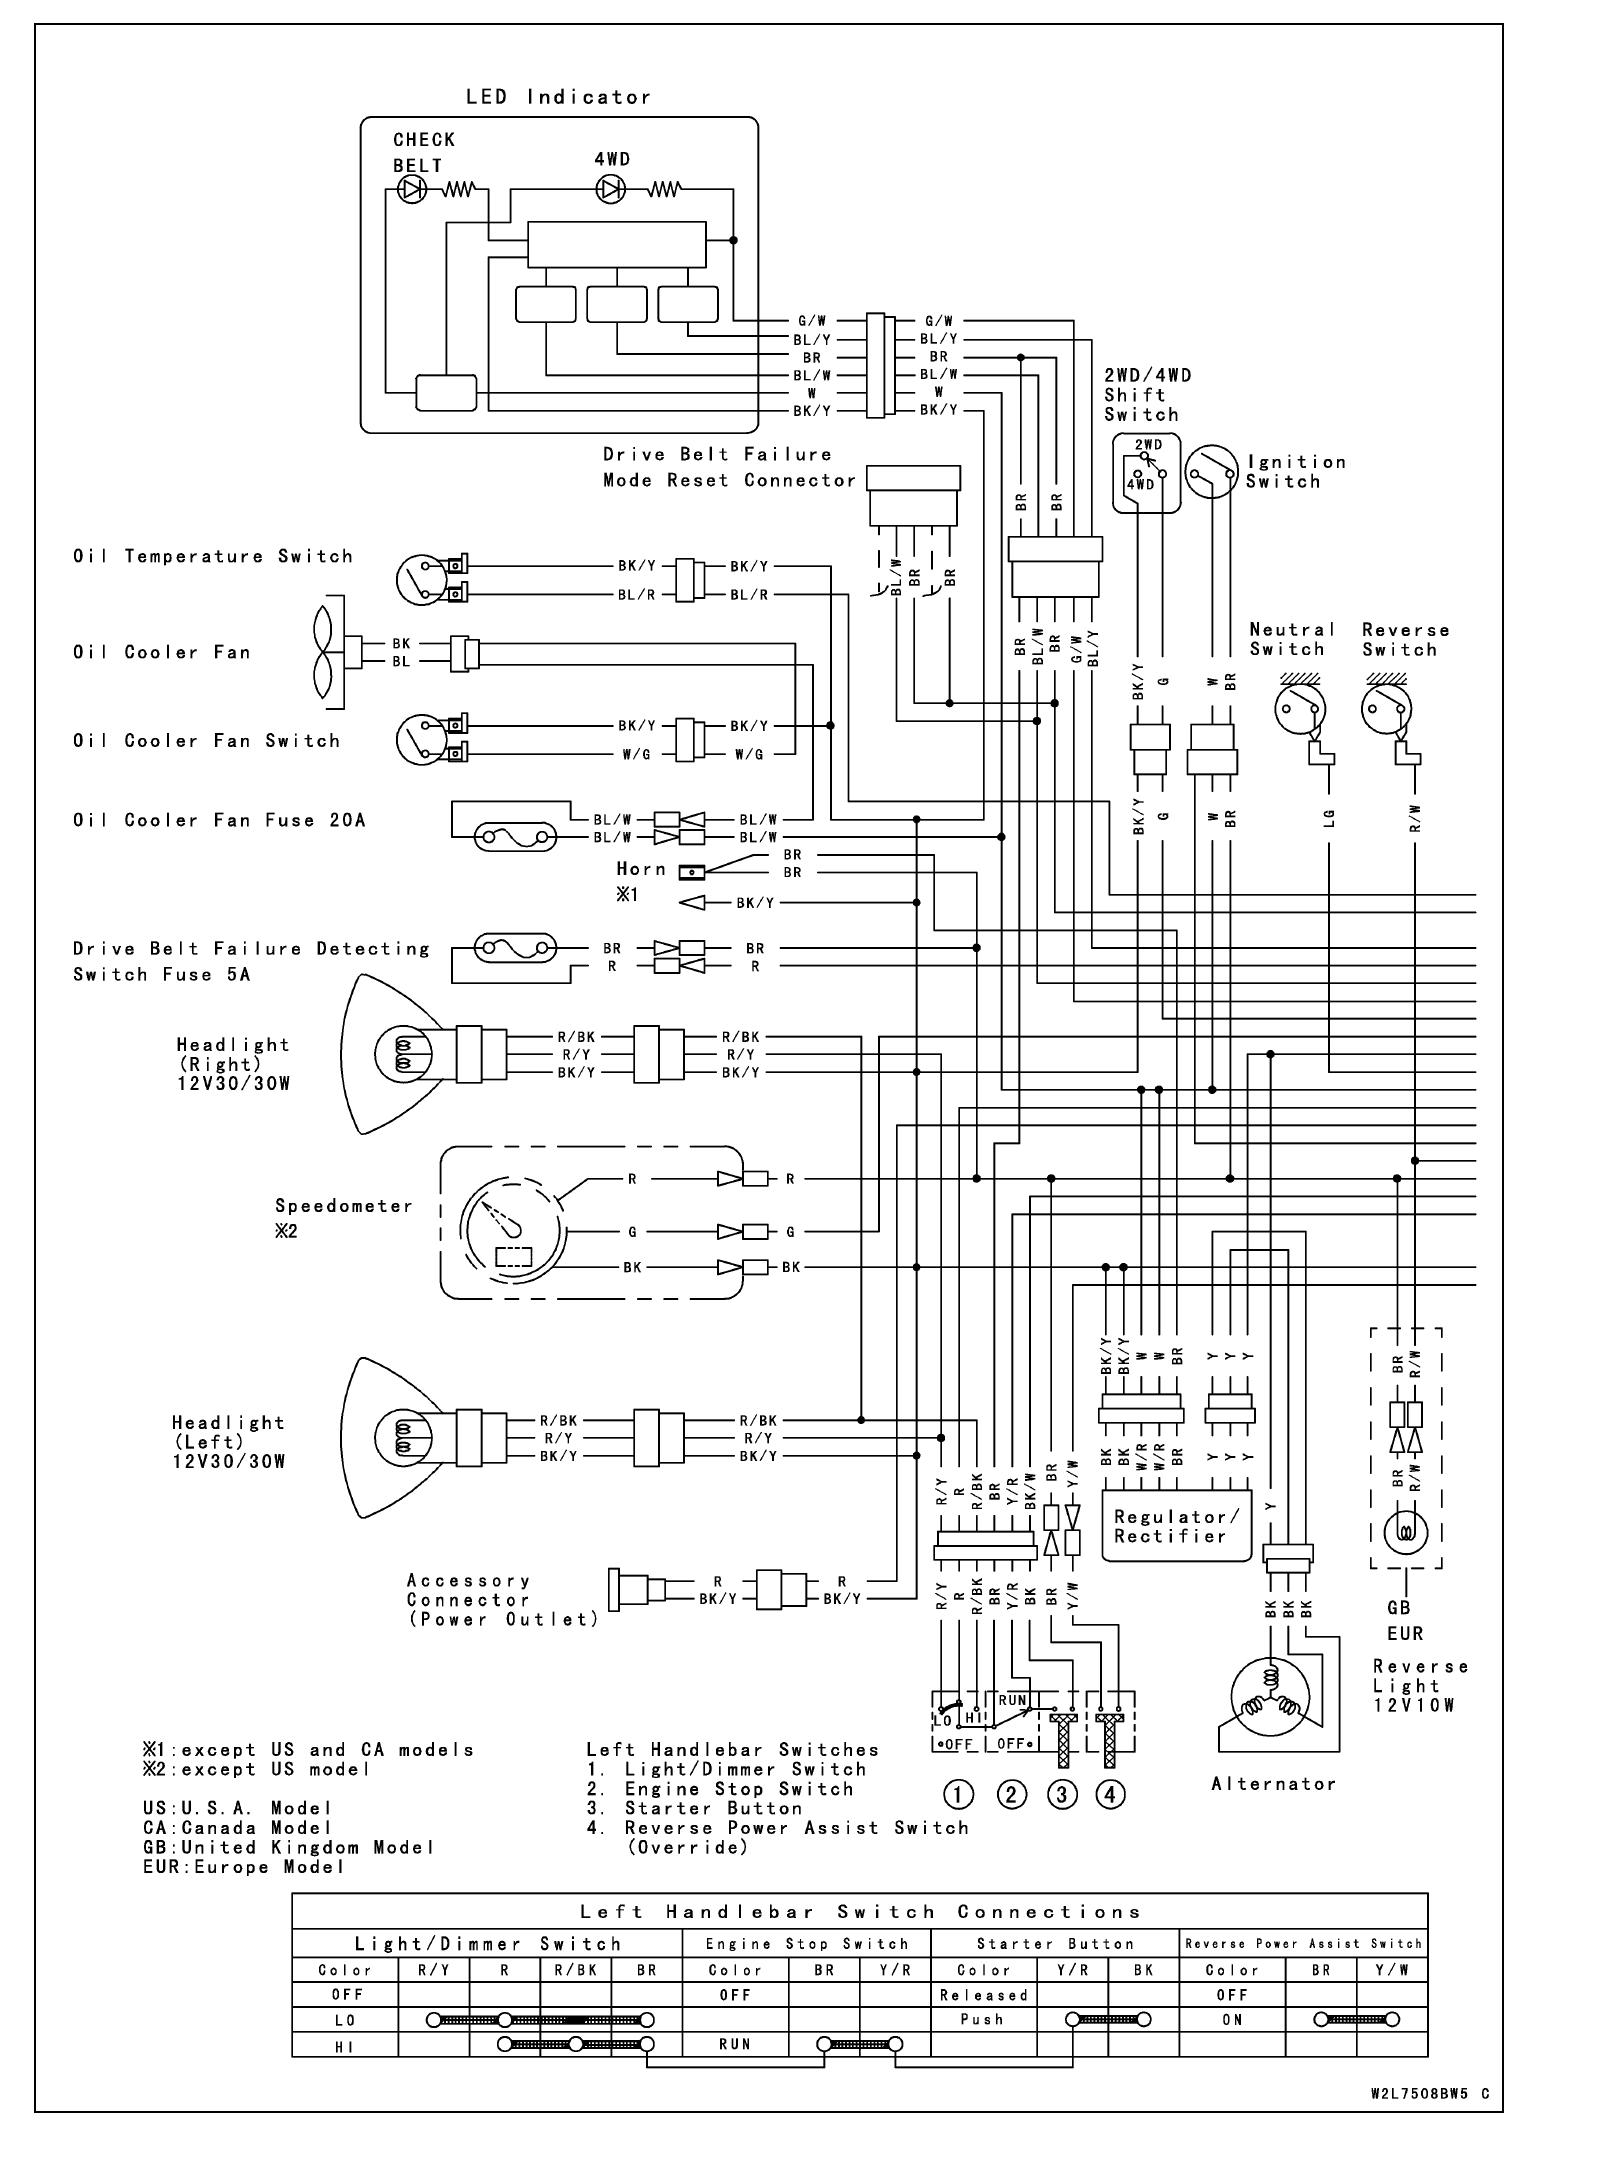 2006 Kawasaki Brute Force Atv Wiring Diagram - Wiring Diagram Var  editor-conference - editor-conference.aziendadono.it | 2005 Kawasaki Brute Force 750 Wiring Diagram |  | editor-conference.aziendadono.it